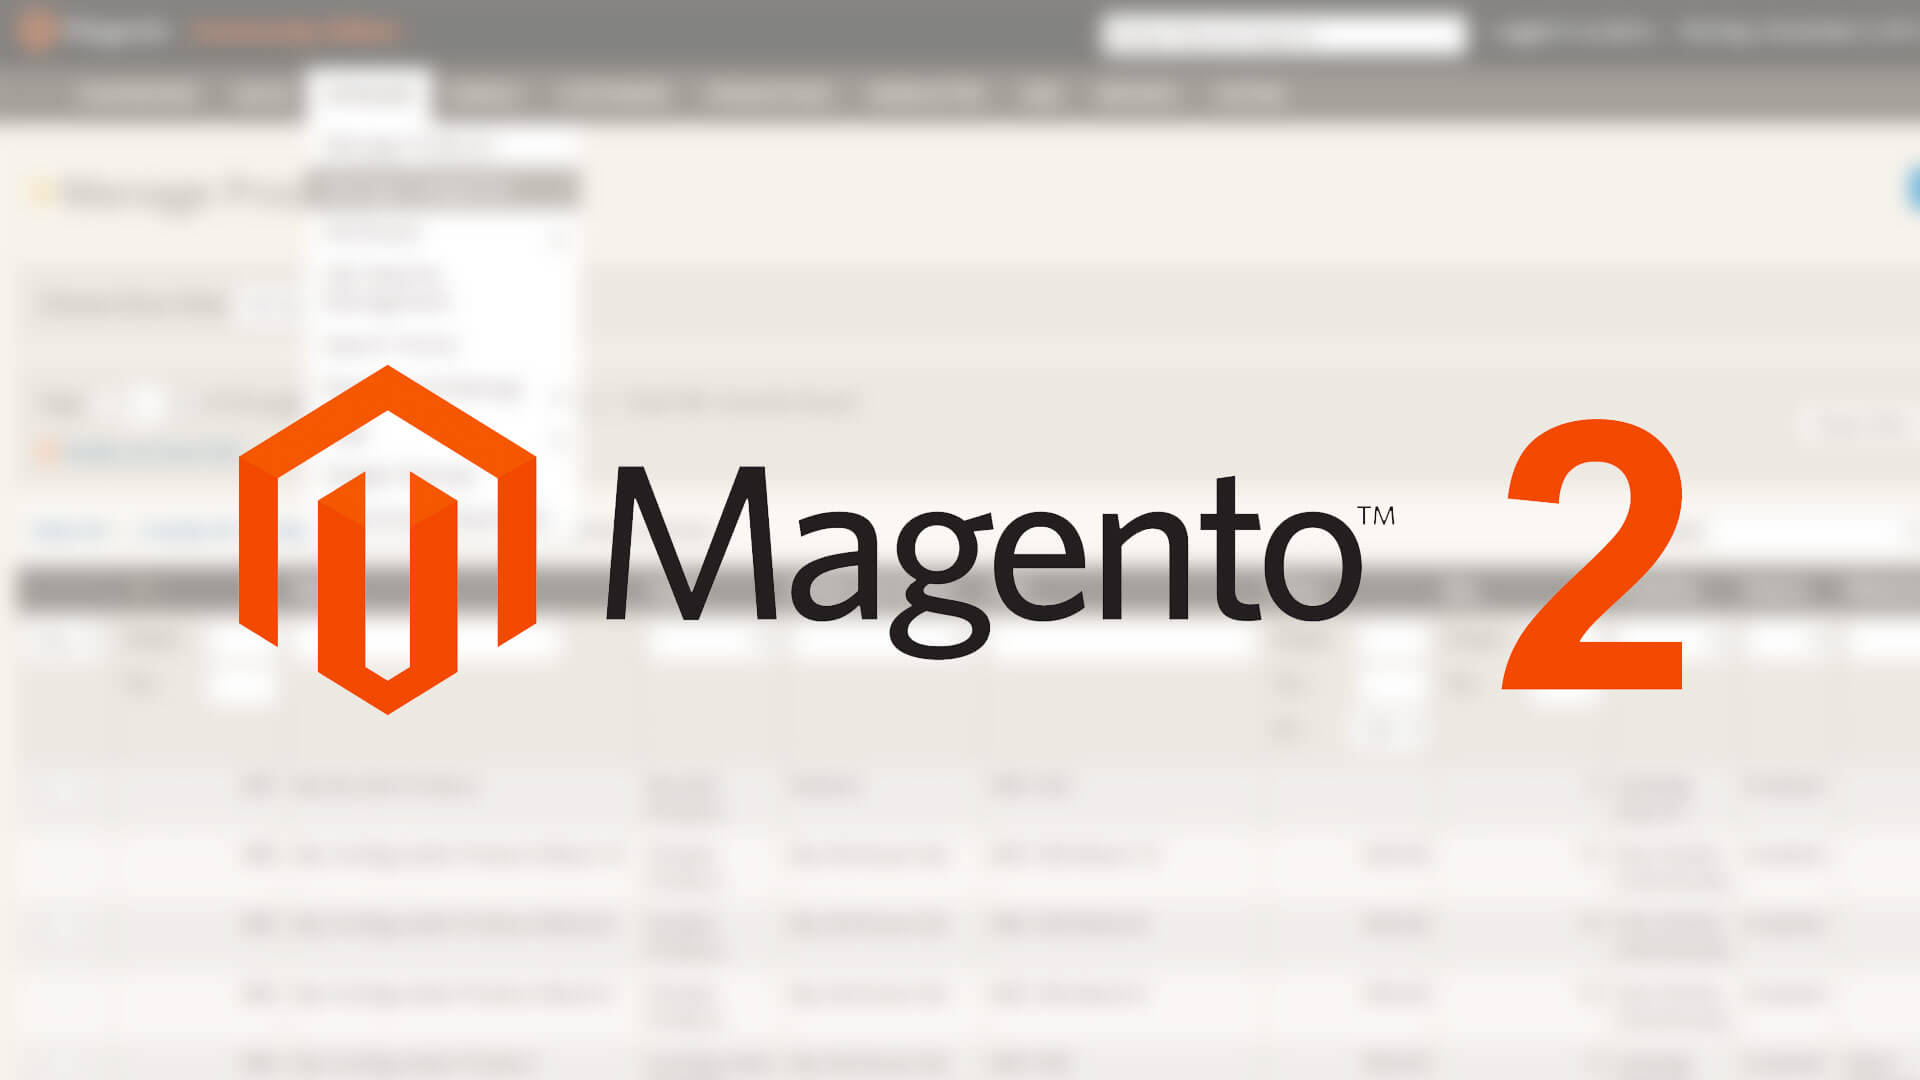 How to Get Magento 2 Attribute & Attribute Options